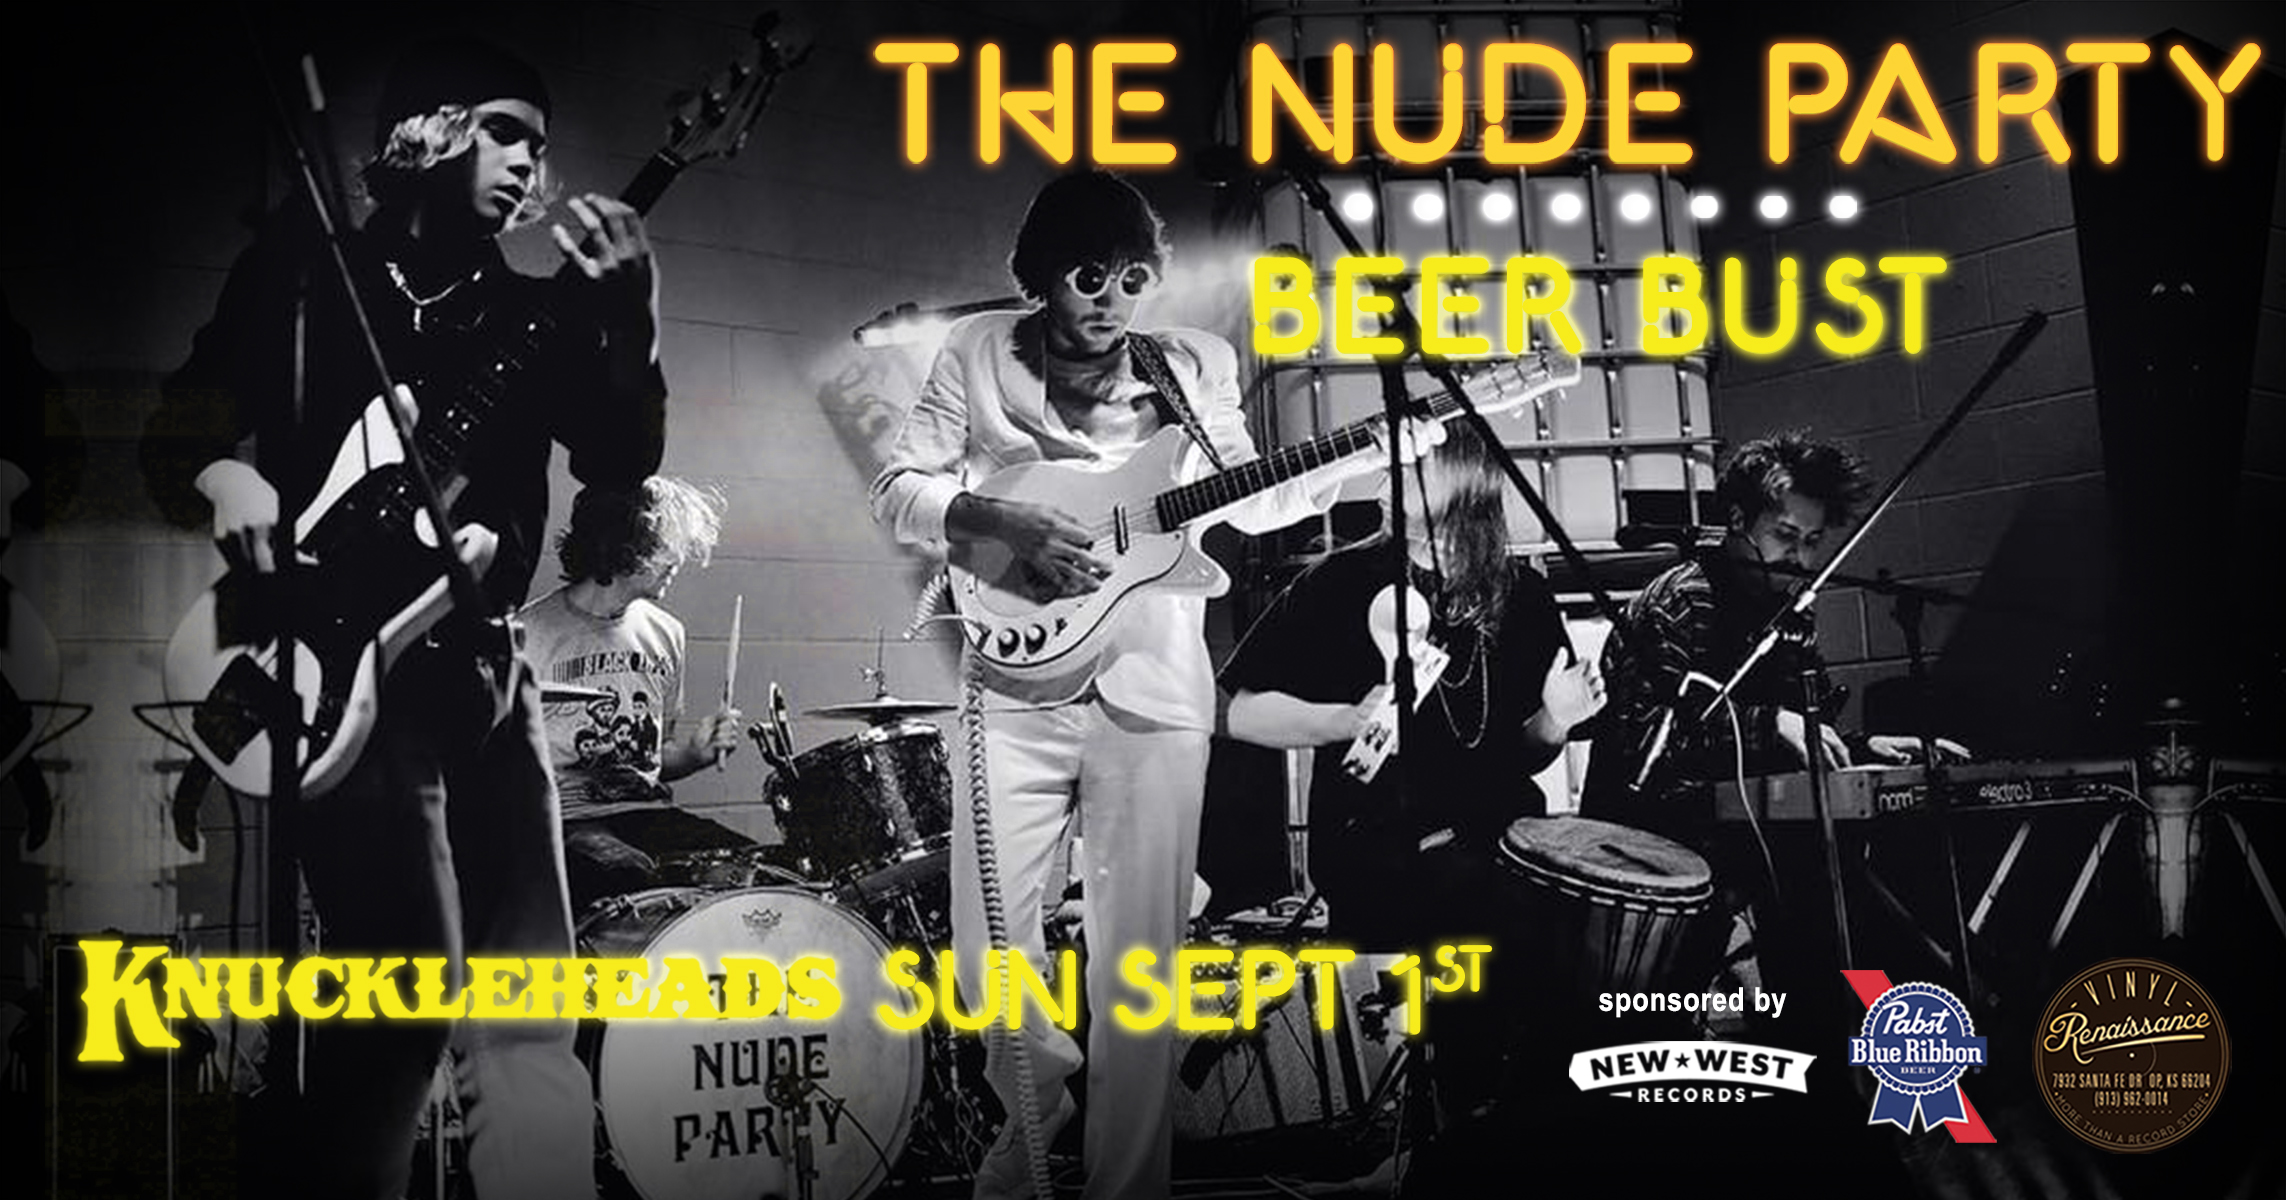 The Nude Party Beer Bust - Knuckleheads Sunday September 1st 2019